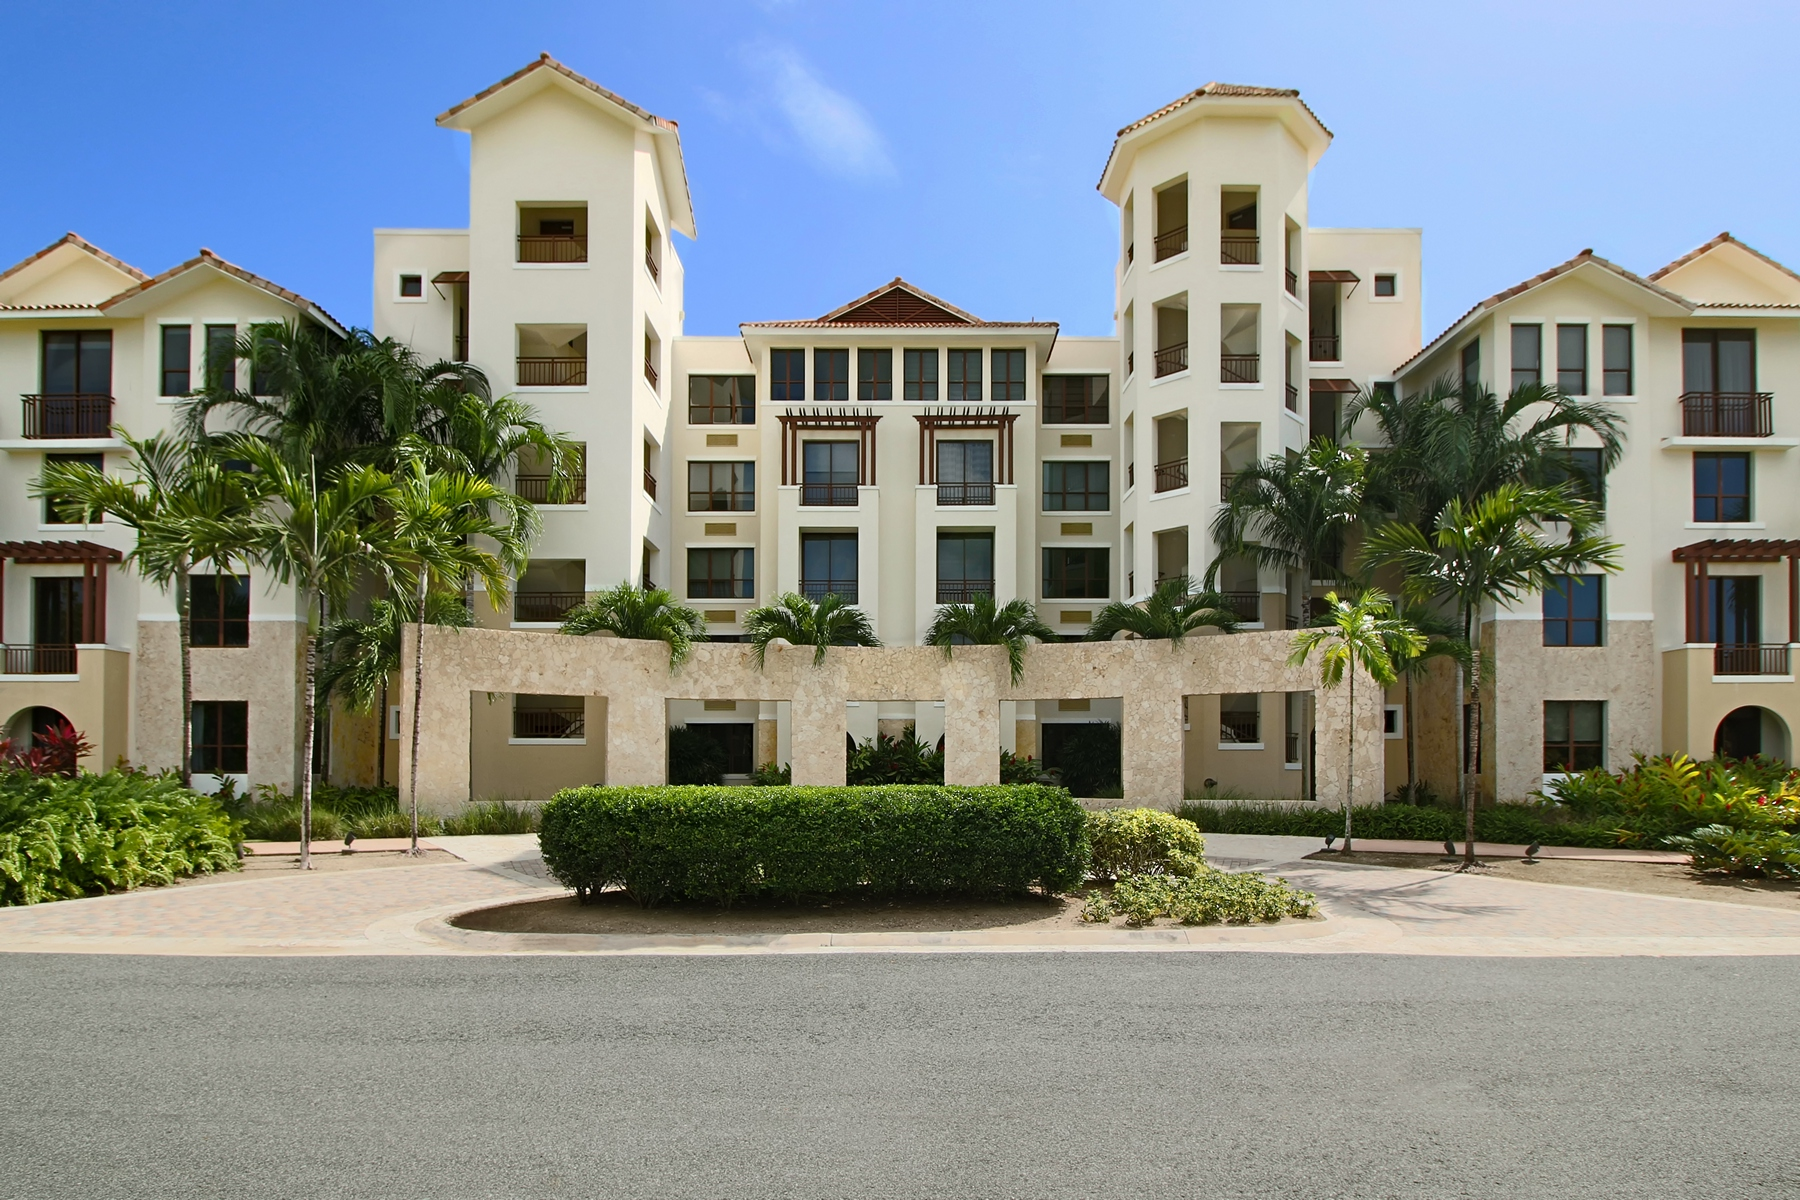 Additional photo for property listing at Residence 131 at 238 Candelero Drive 238 Candelero Drive, Apt 131 Solarea Beach Resort and Yacht Club Palmas Del Mar, 00791 Porto Rico